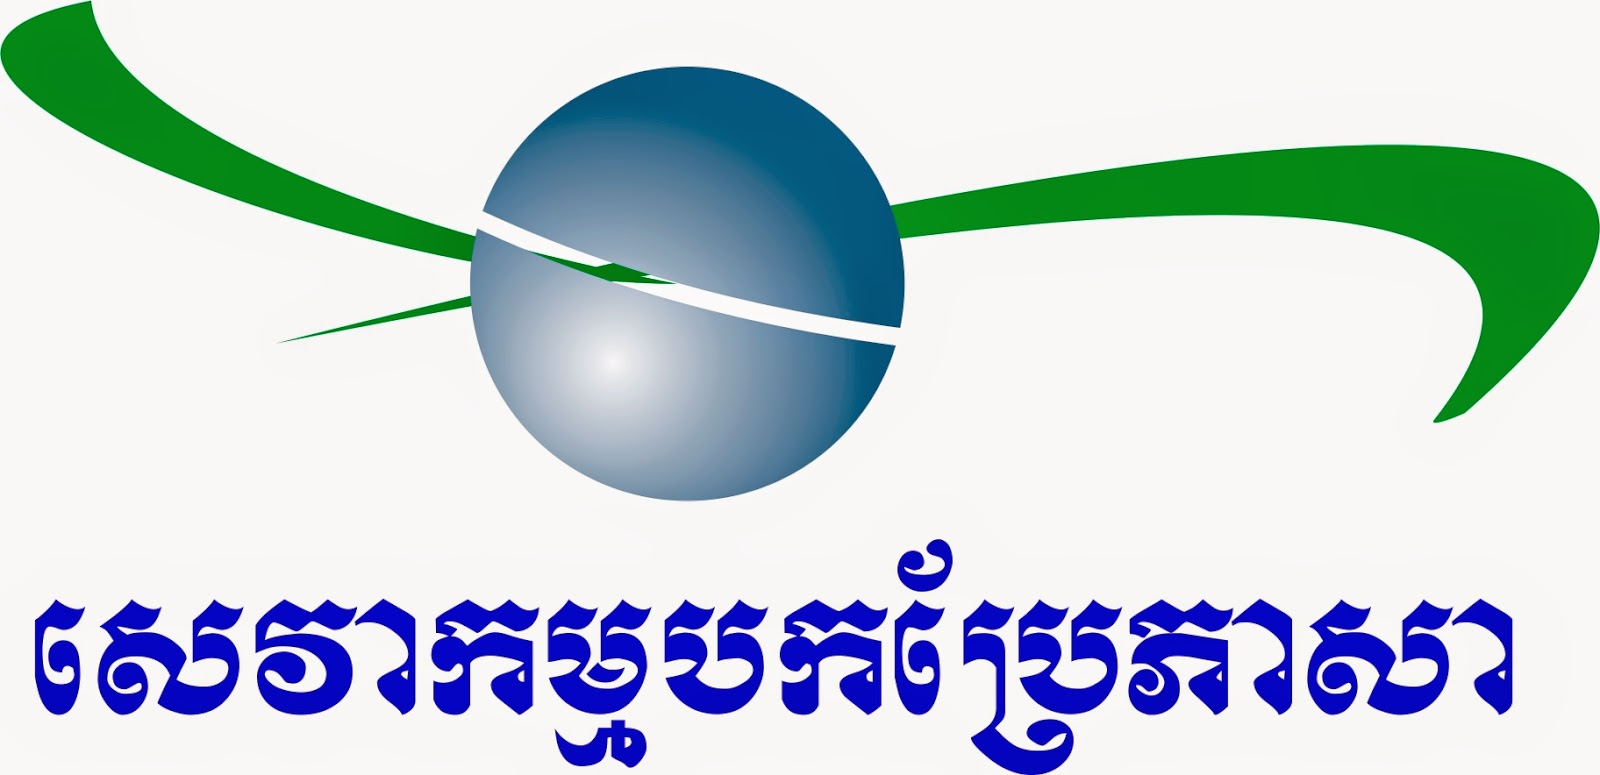 I Am Serving You The Accuracy And Trust Of Freelance Khmer To English Vice Versa Translation Interpreting Services In Cambodia For Purposes